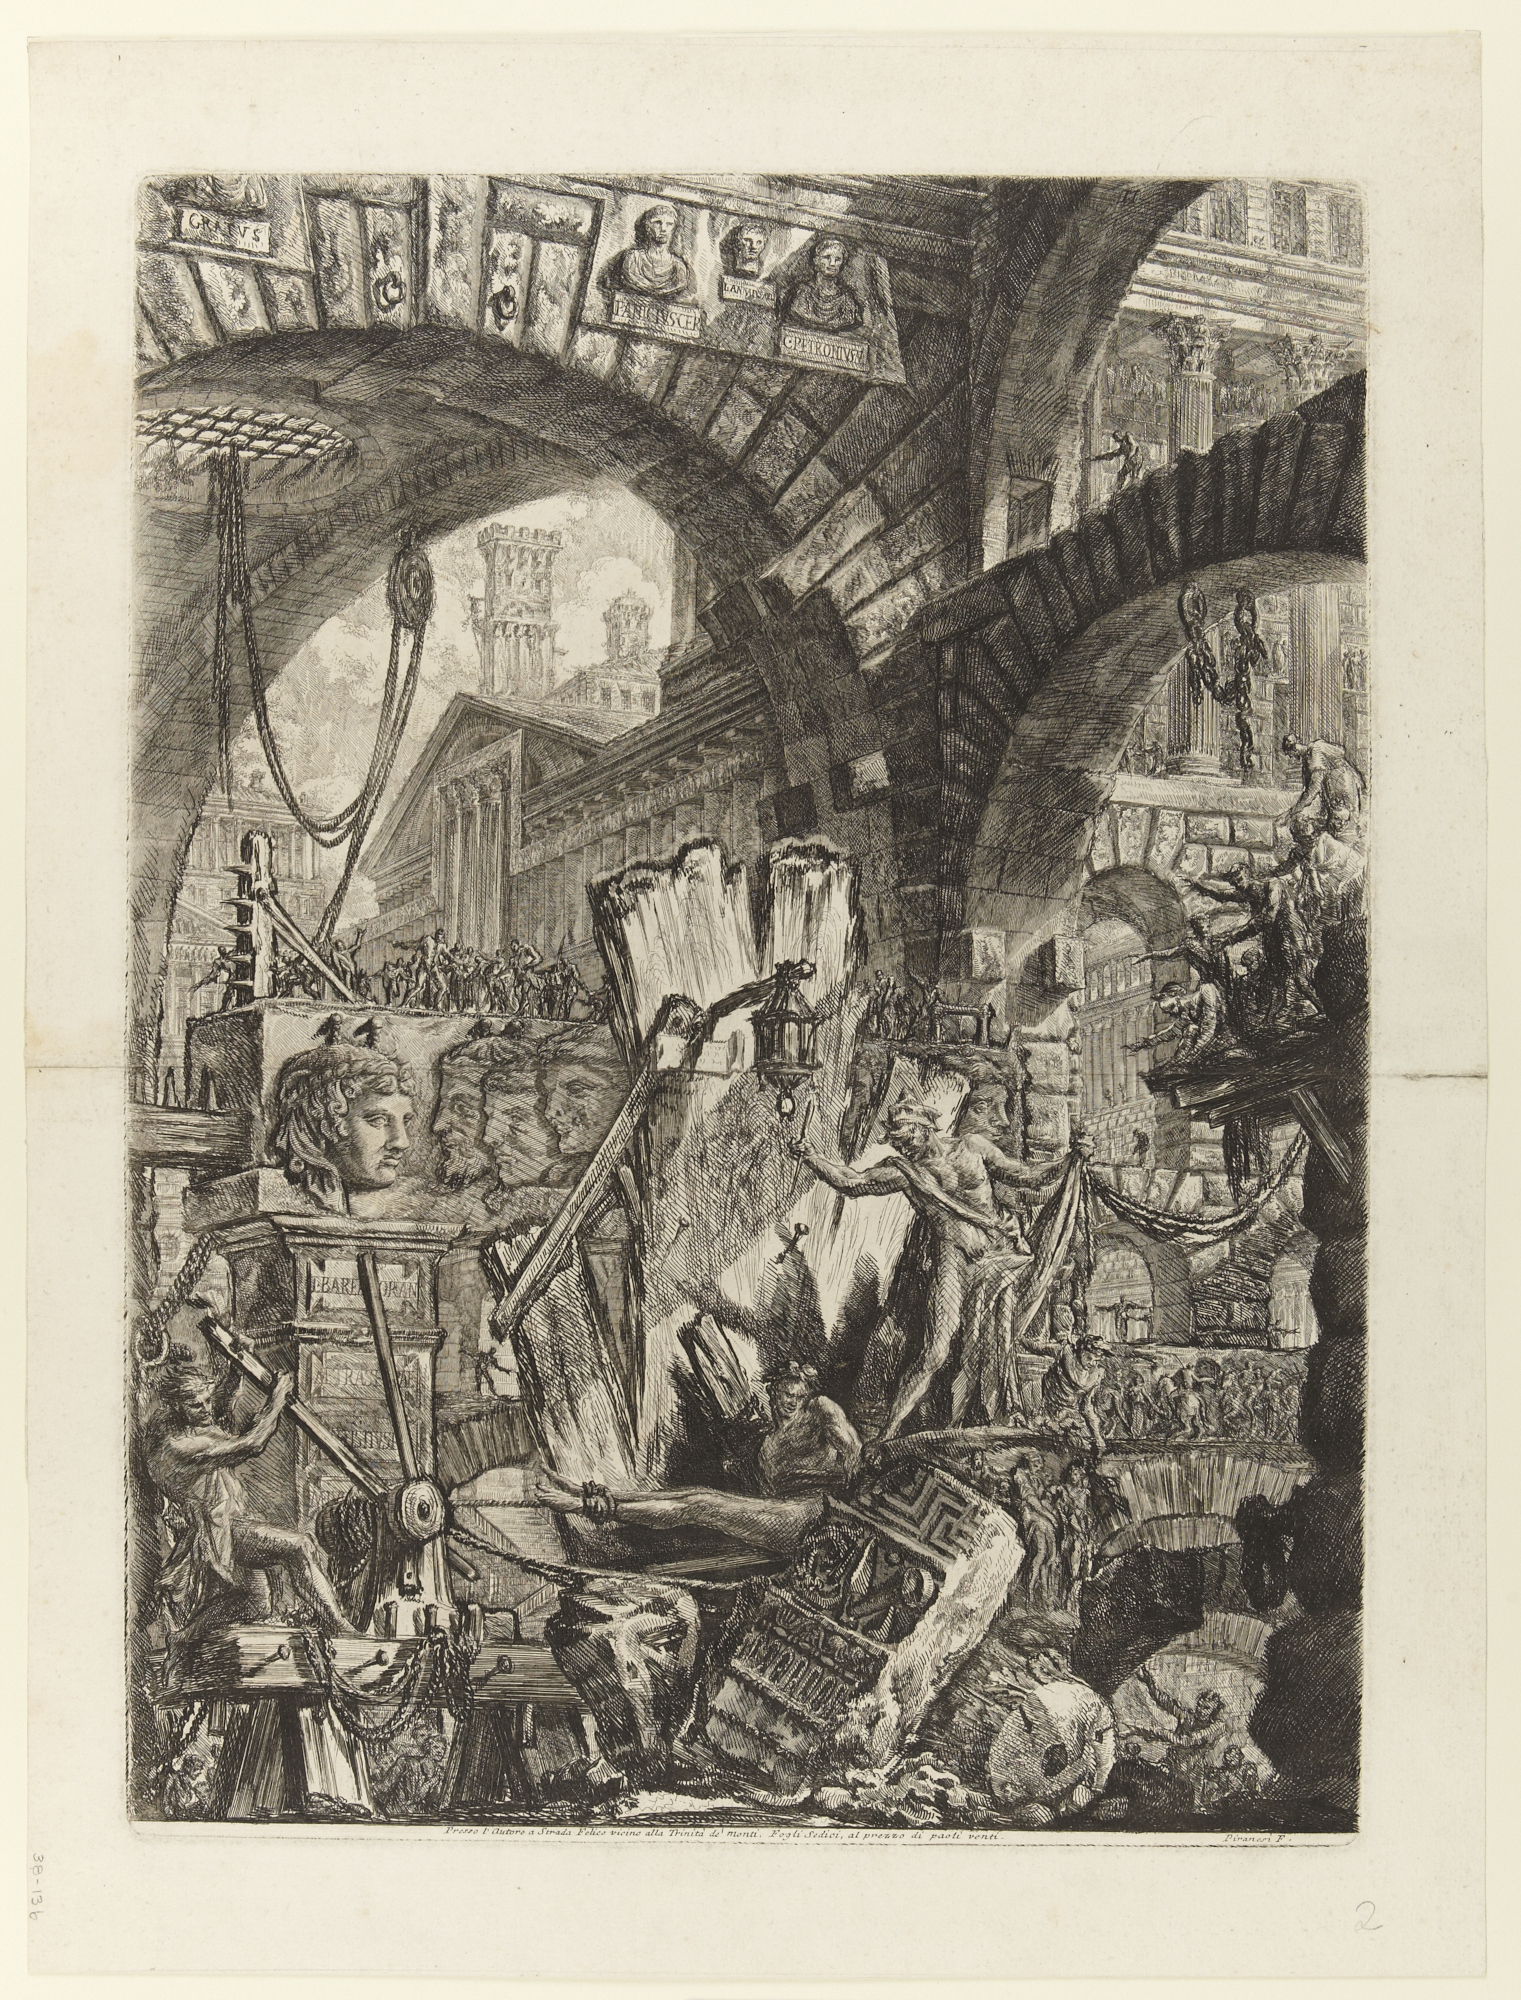 The Man on the Rack, 1761 — Giovanni Battista Piranesi